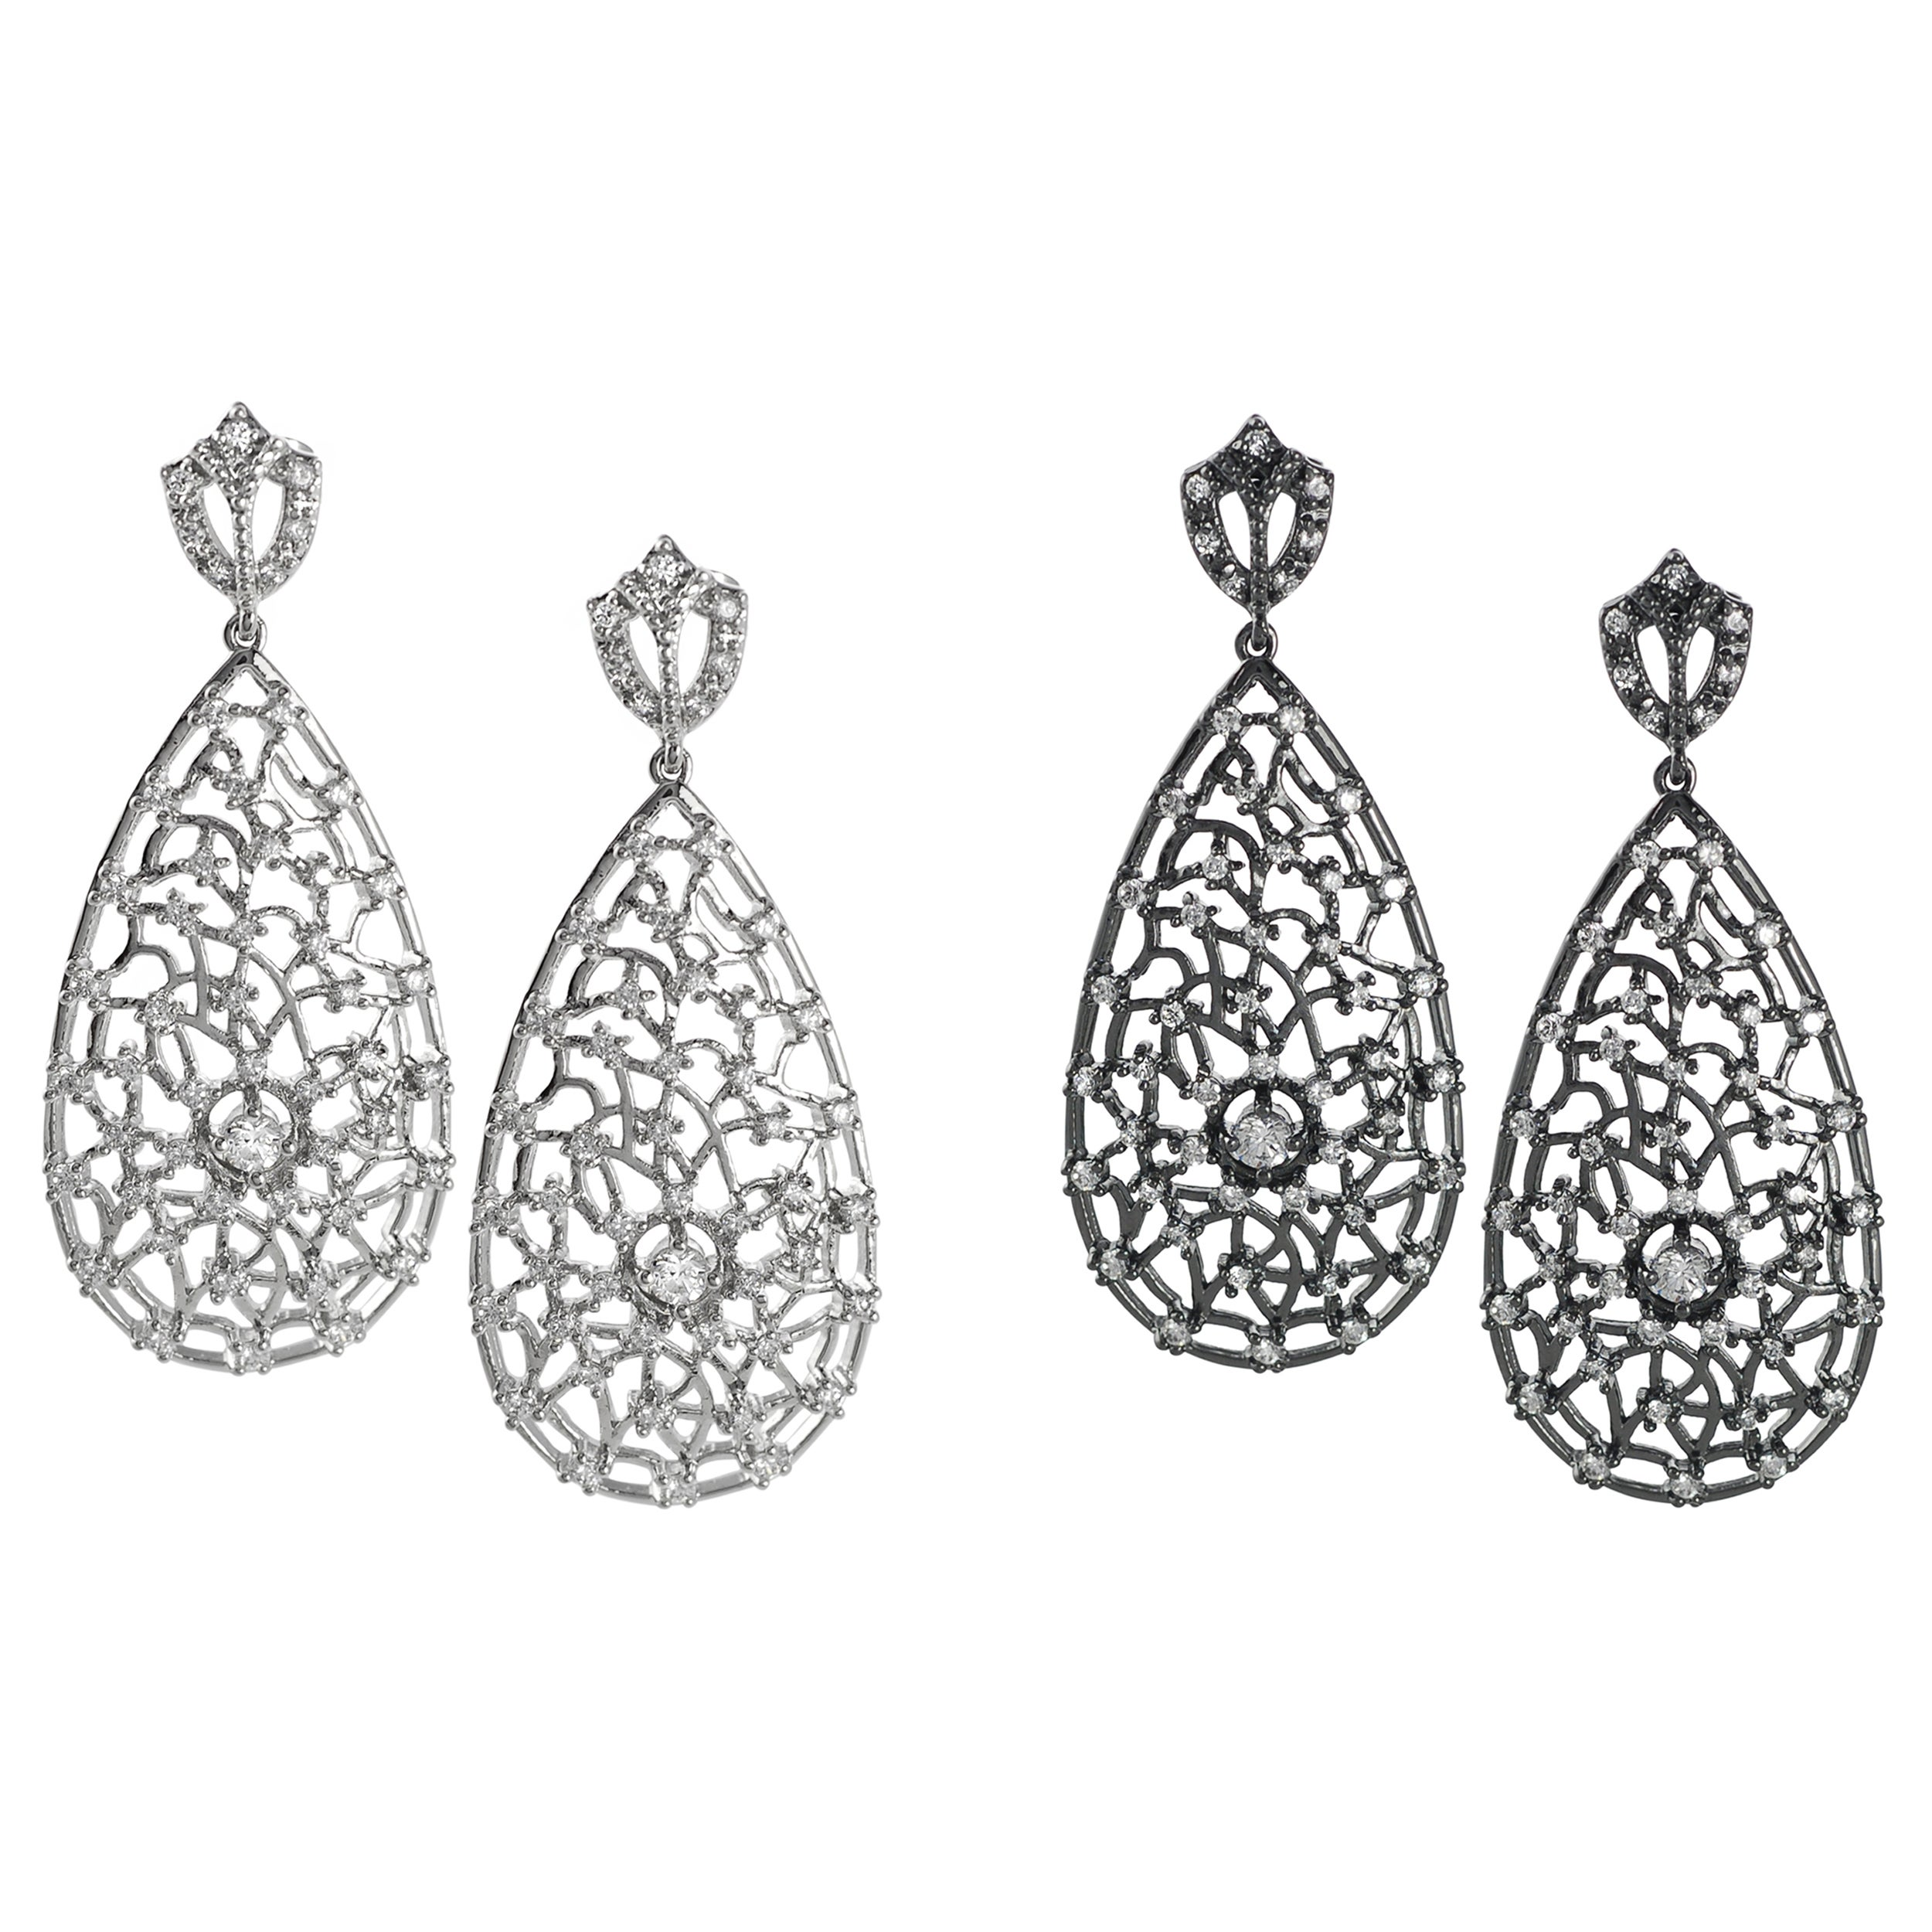 Journee Collection Sterling Silver White Cubic Zirconia Lace Web Tear Drop Earring